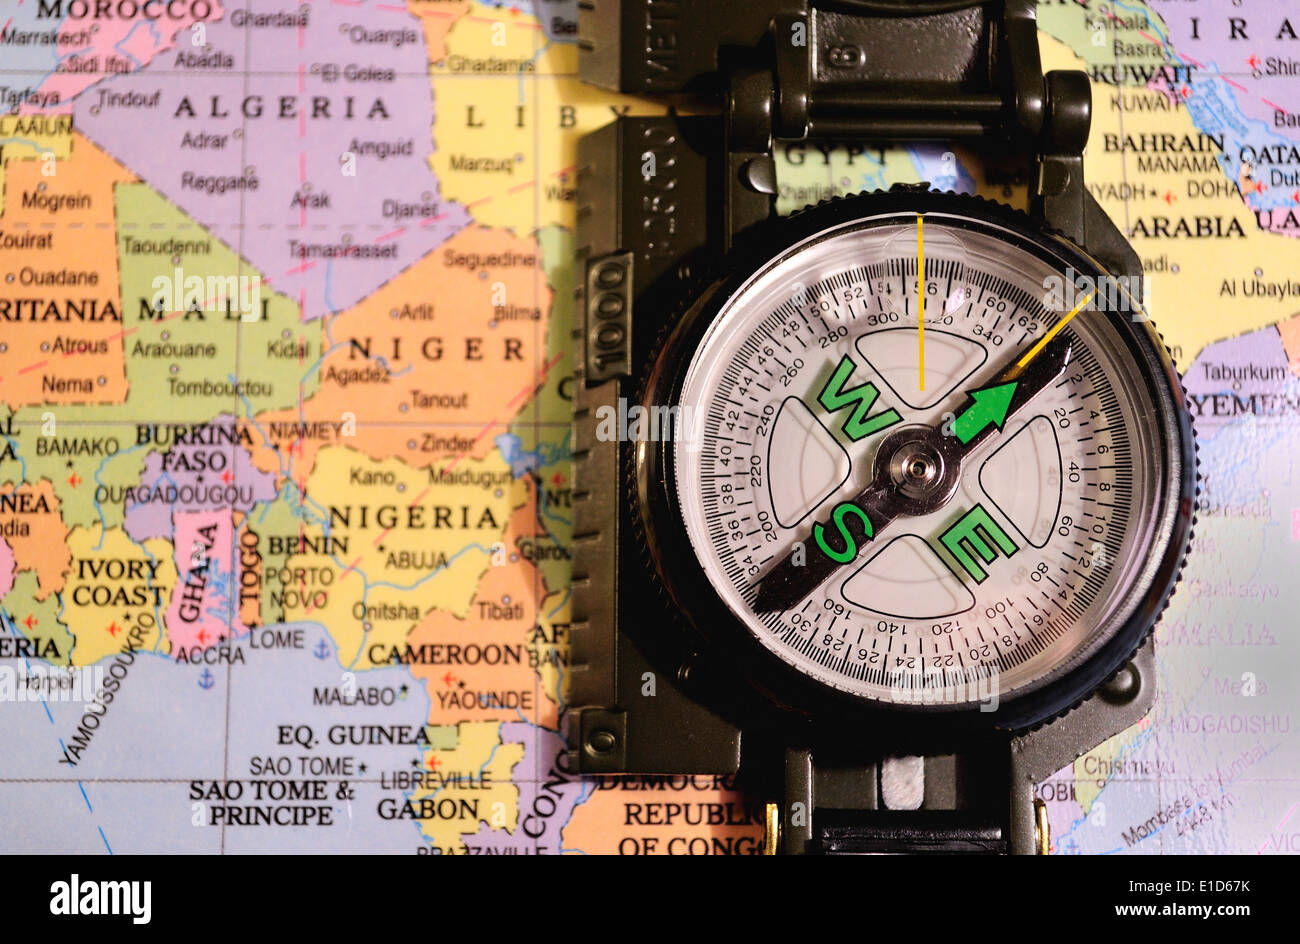 A magnetic compass on a map of Africa. - Stock Image